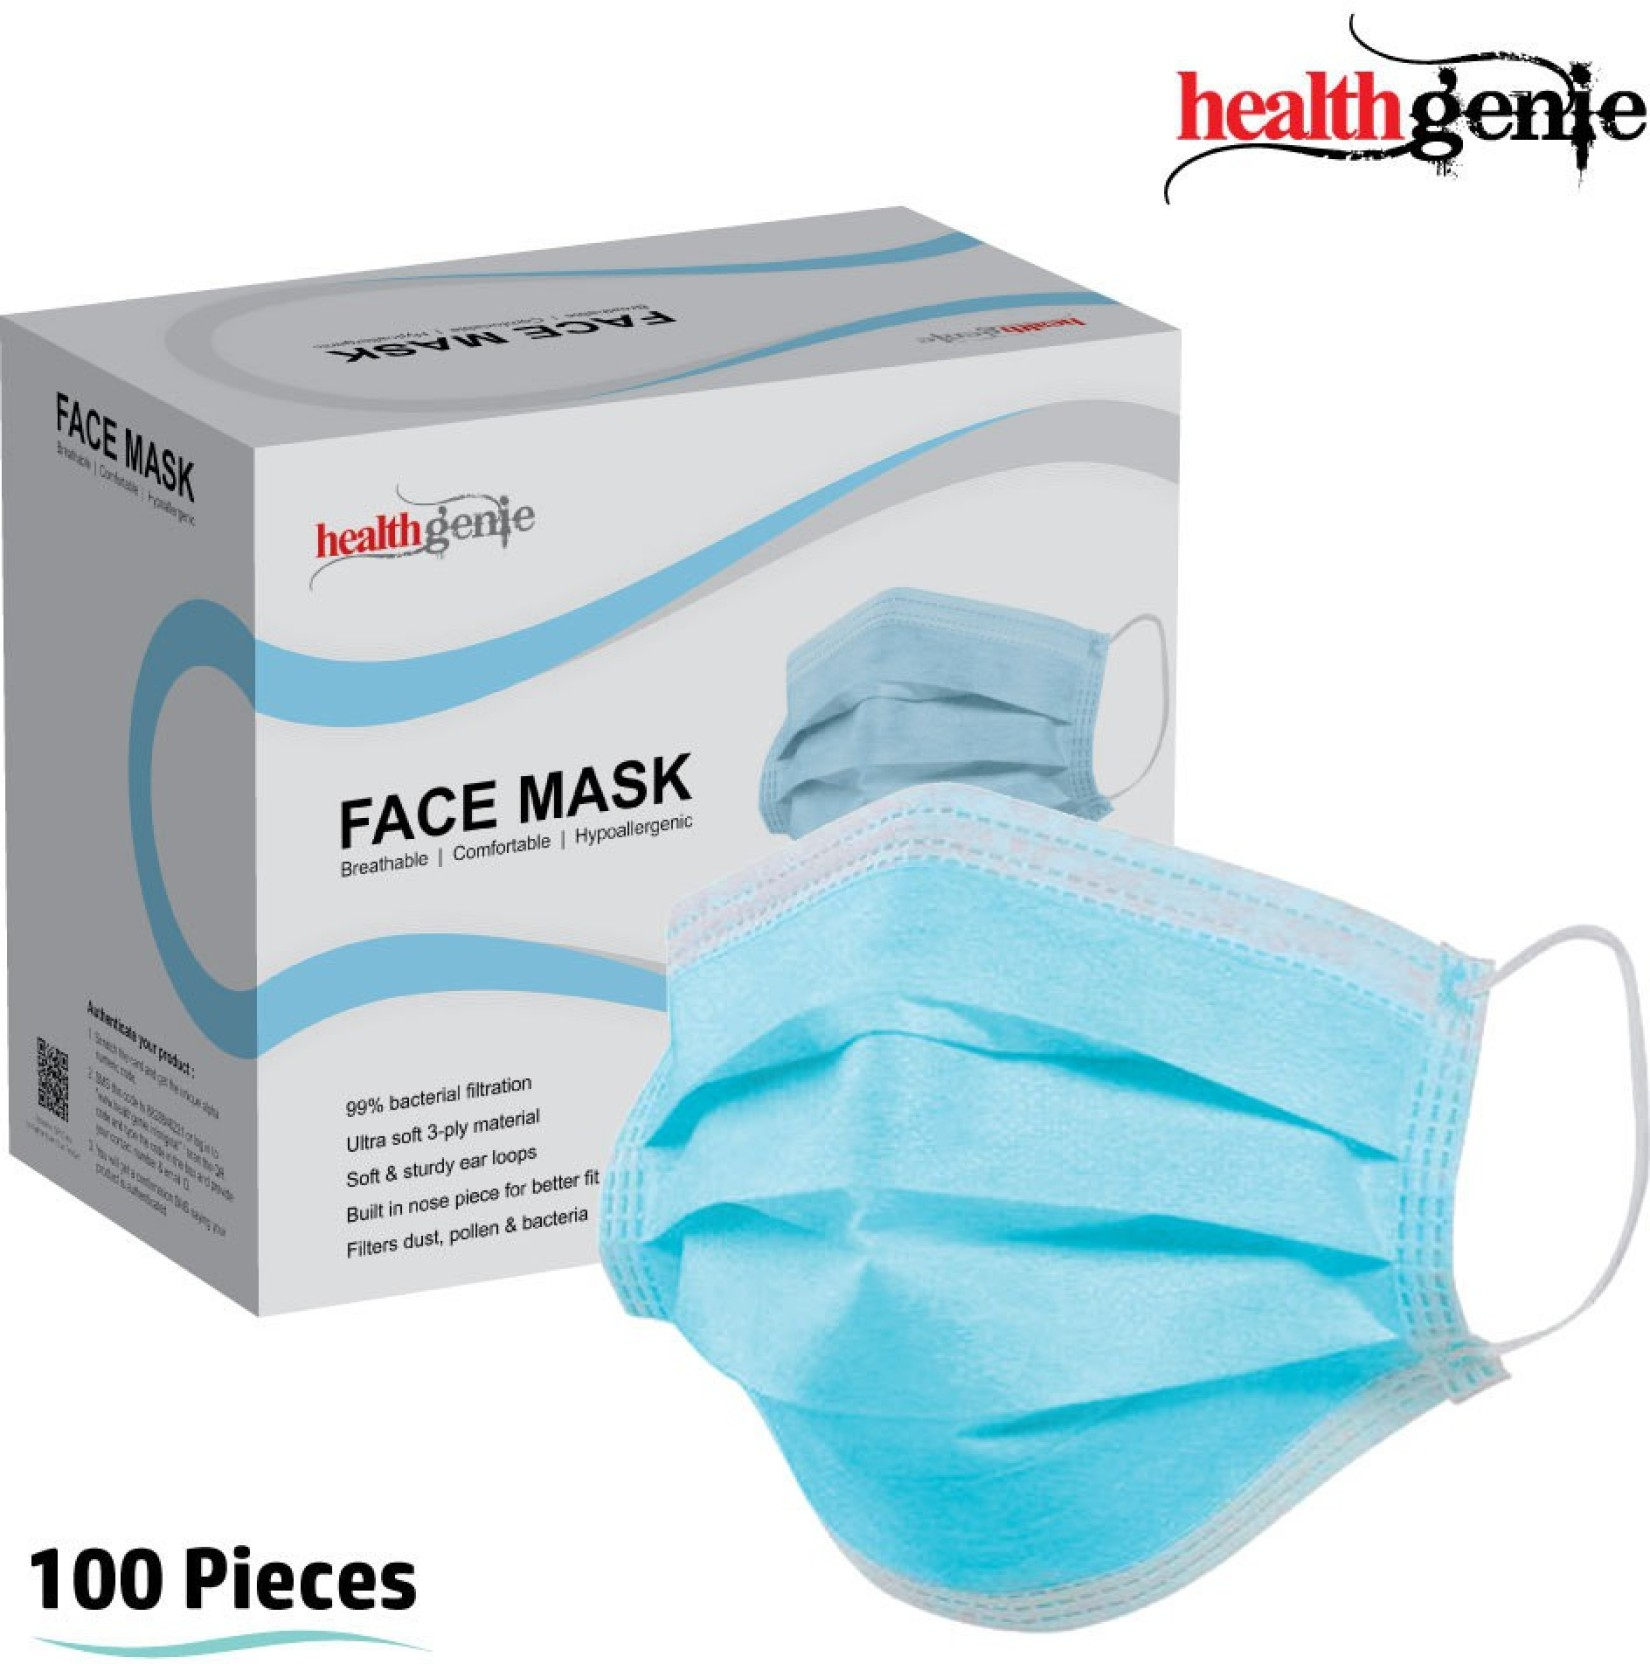 Disposable Elastic Anti-pollution Mask 3-ply Healthgenie Face